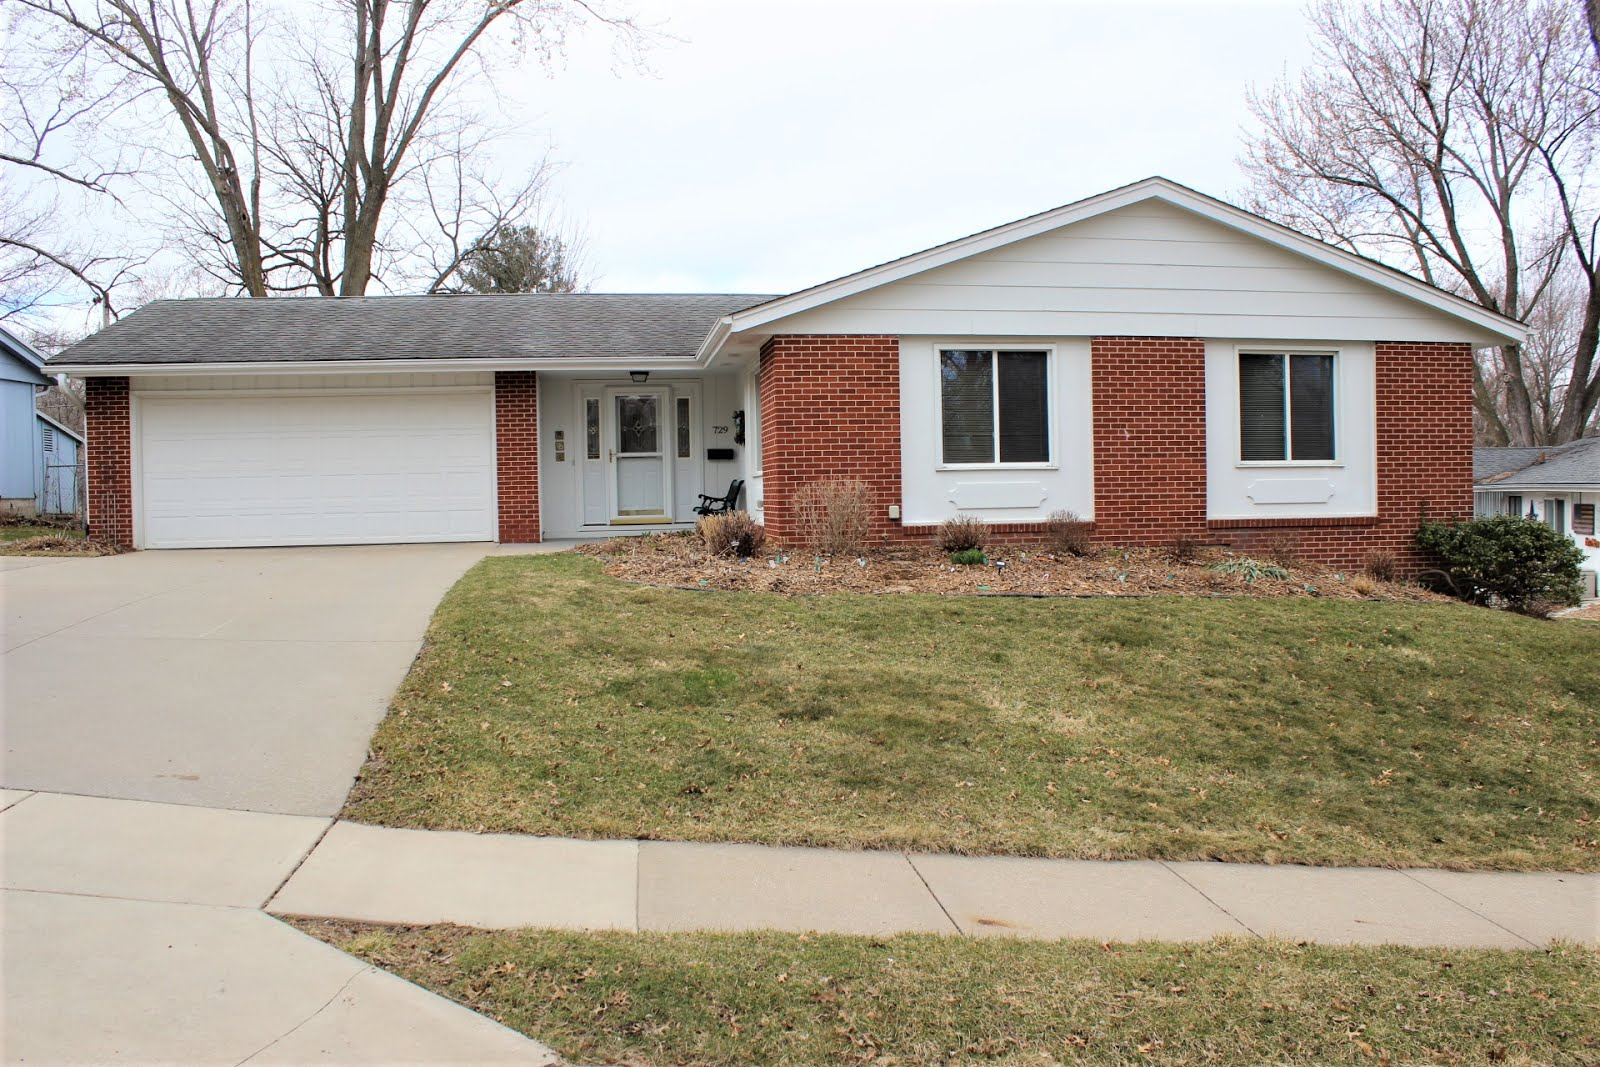 729 Alpine Dr. Iowa City, IA 52245 $275,000